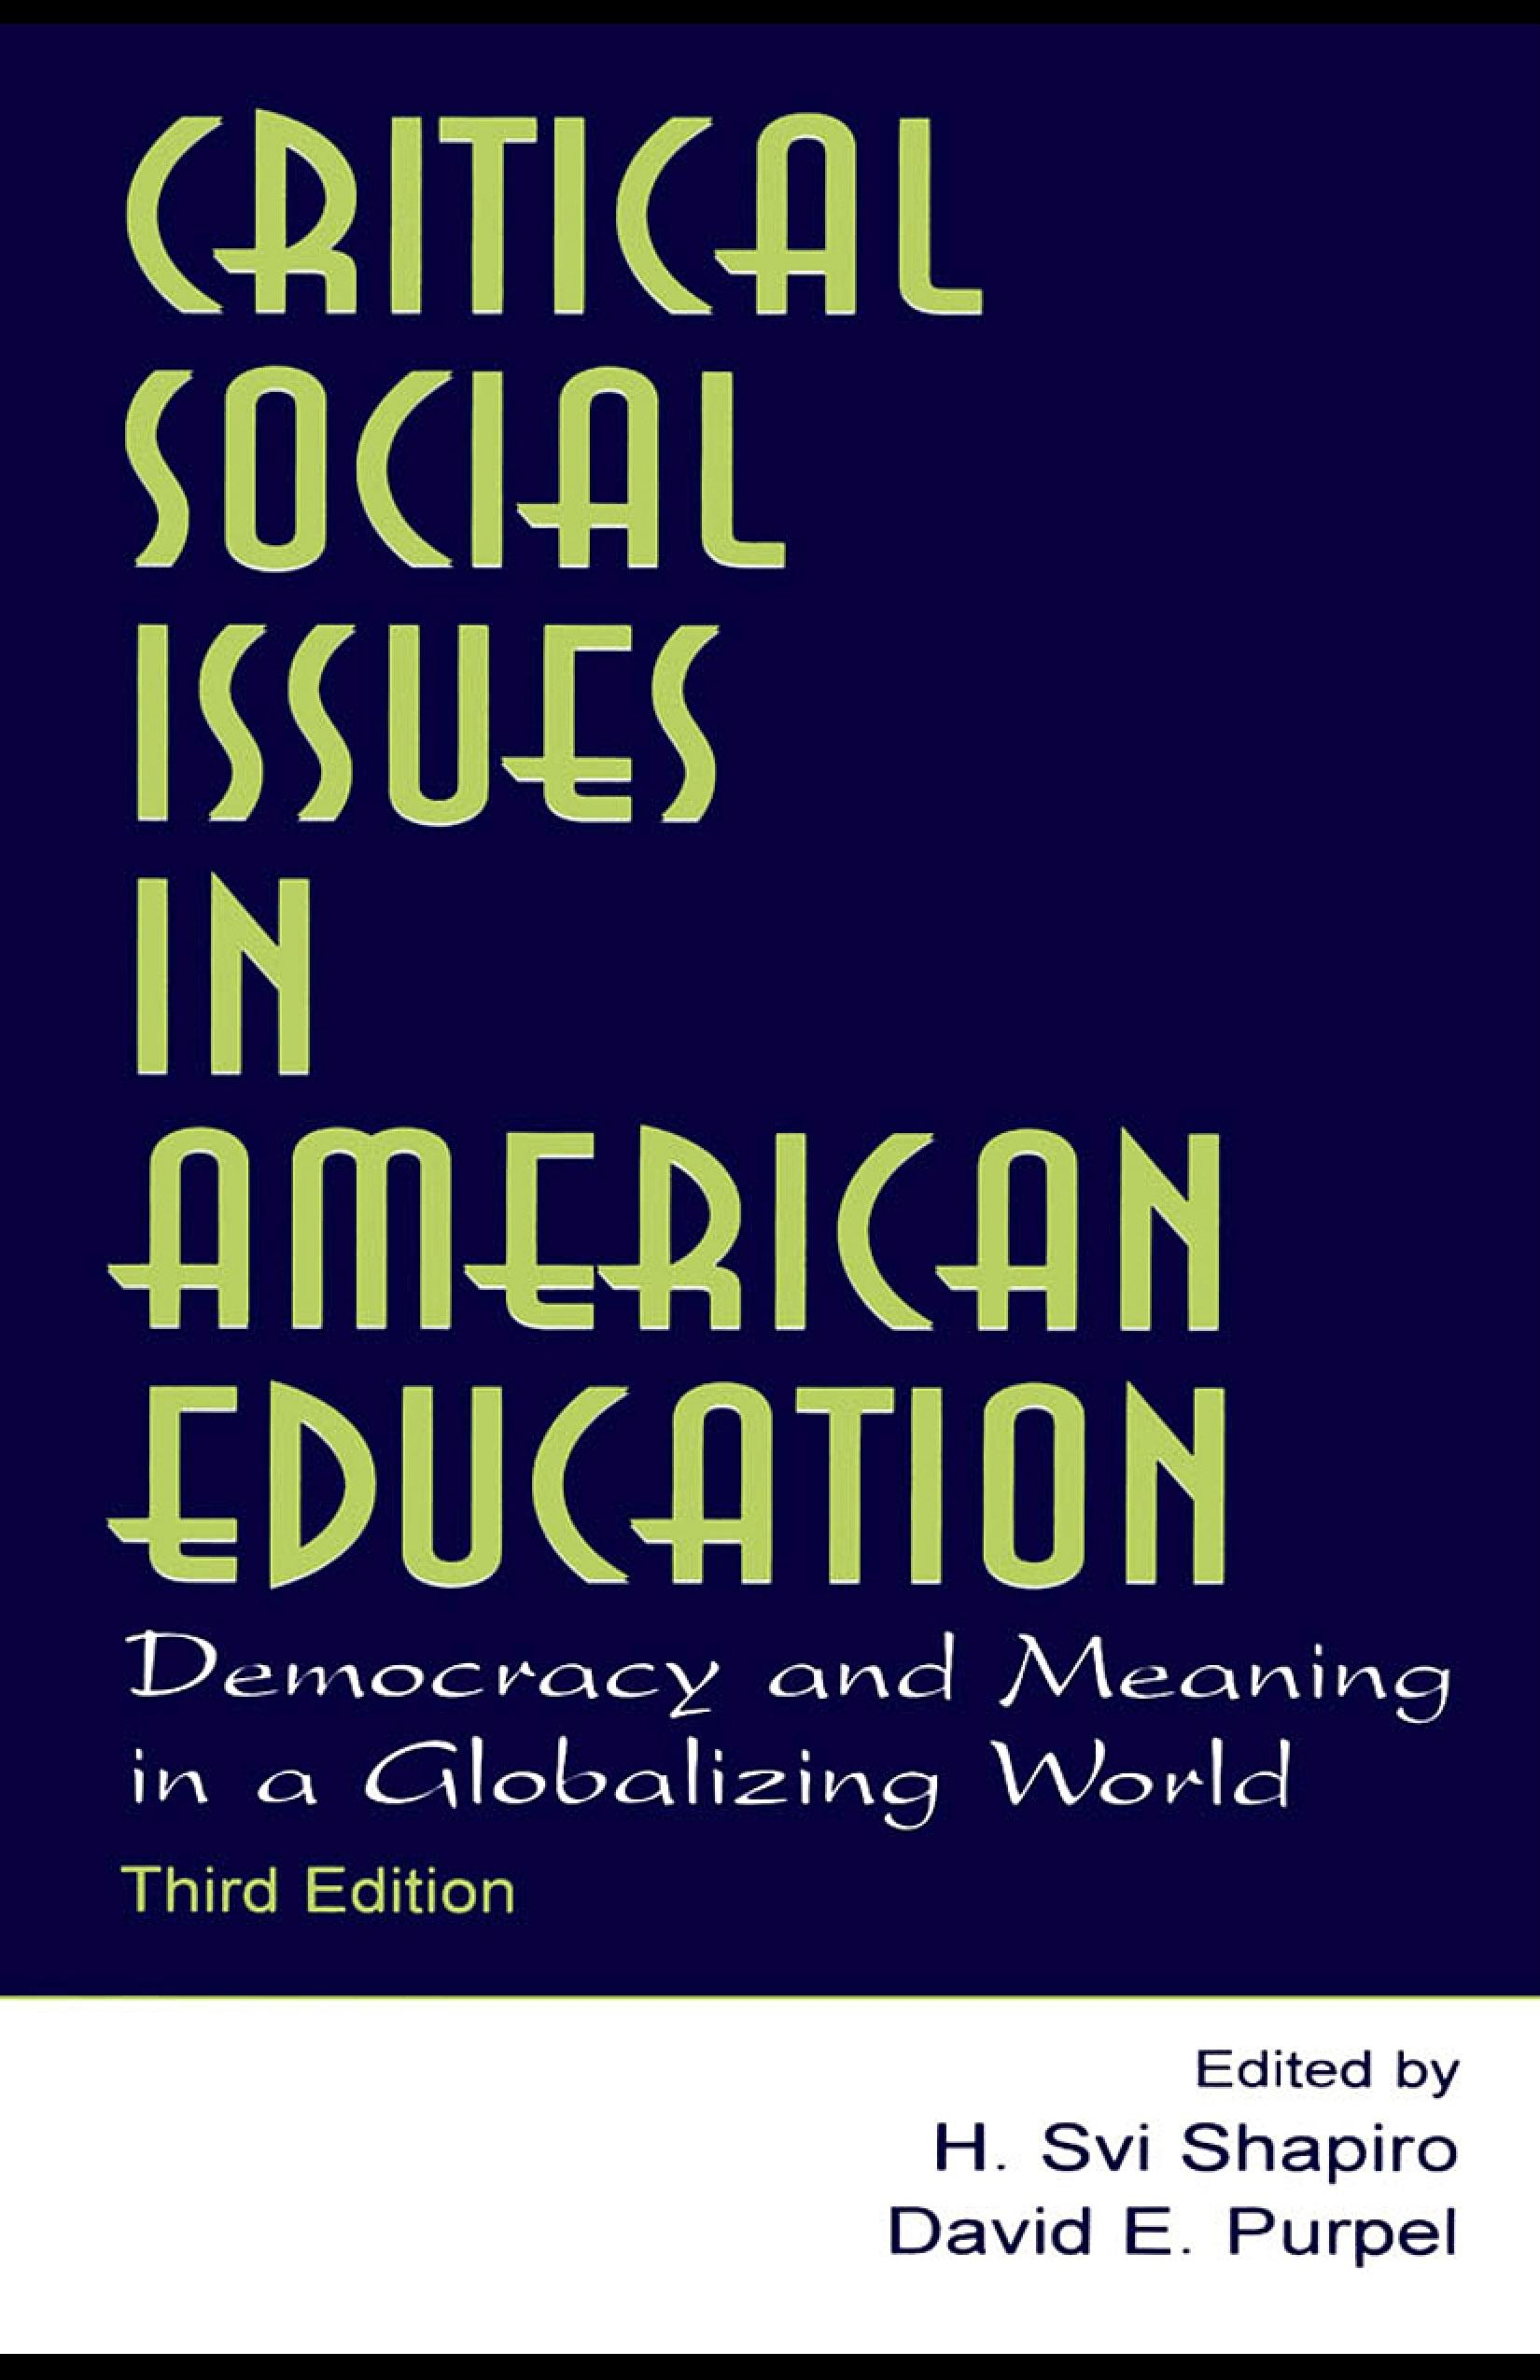 Critical Social Issues in American Education: Democracy and Meaning in a Globalizing World EB9781410611055